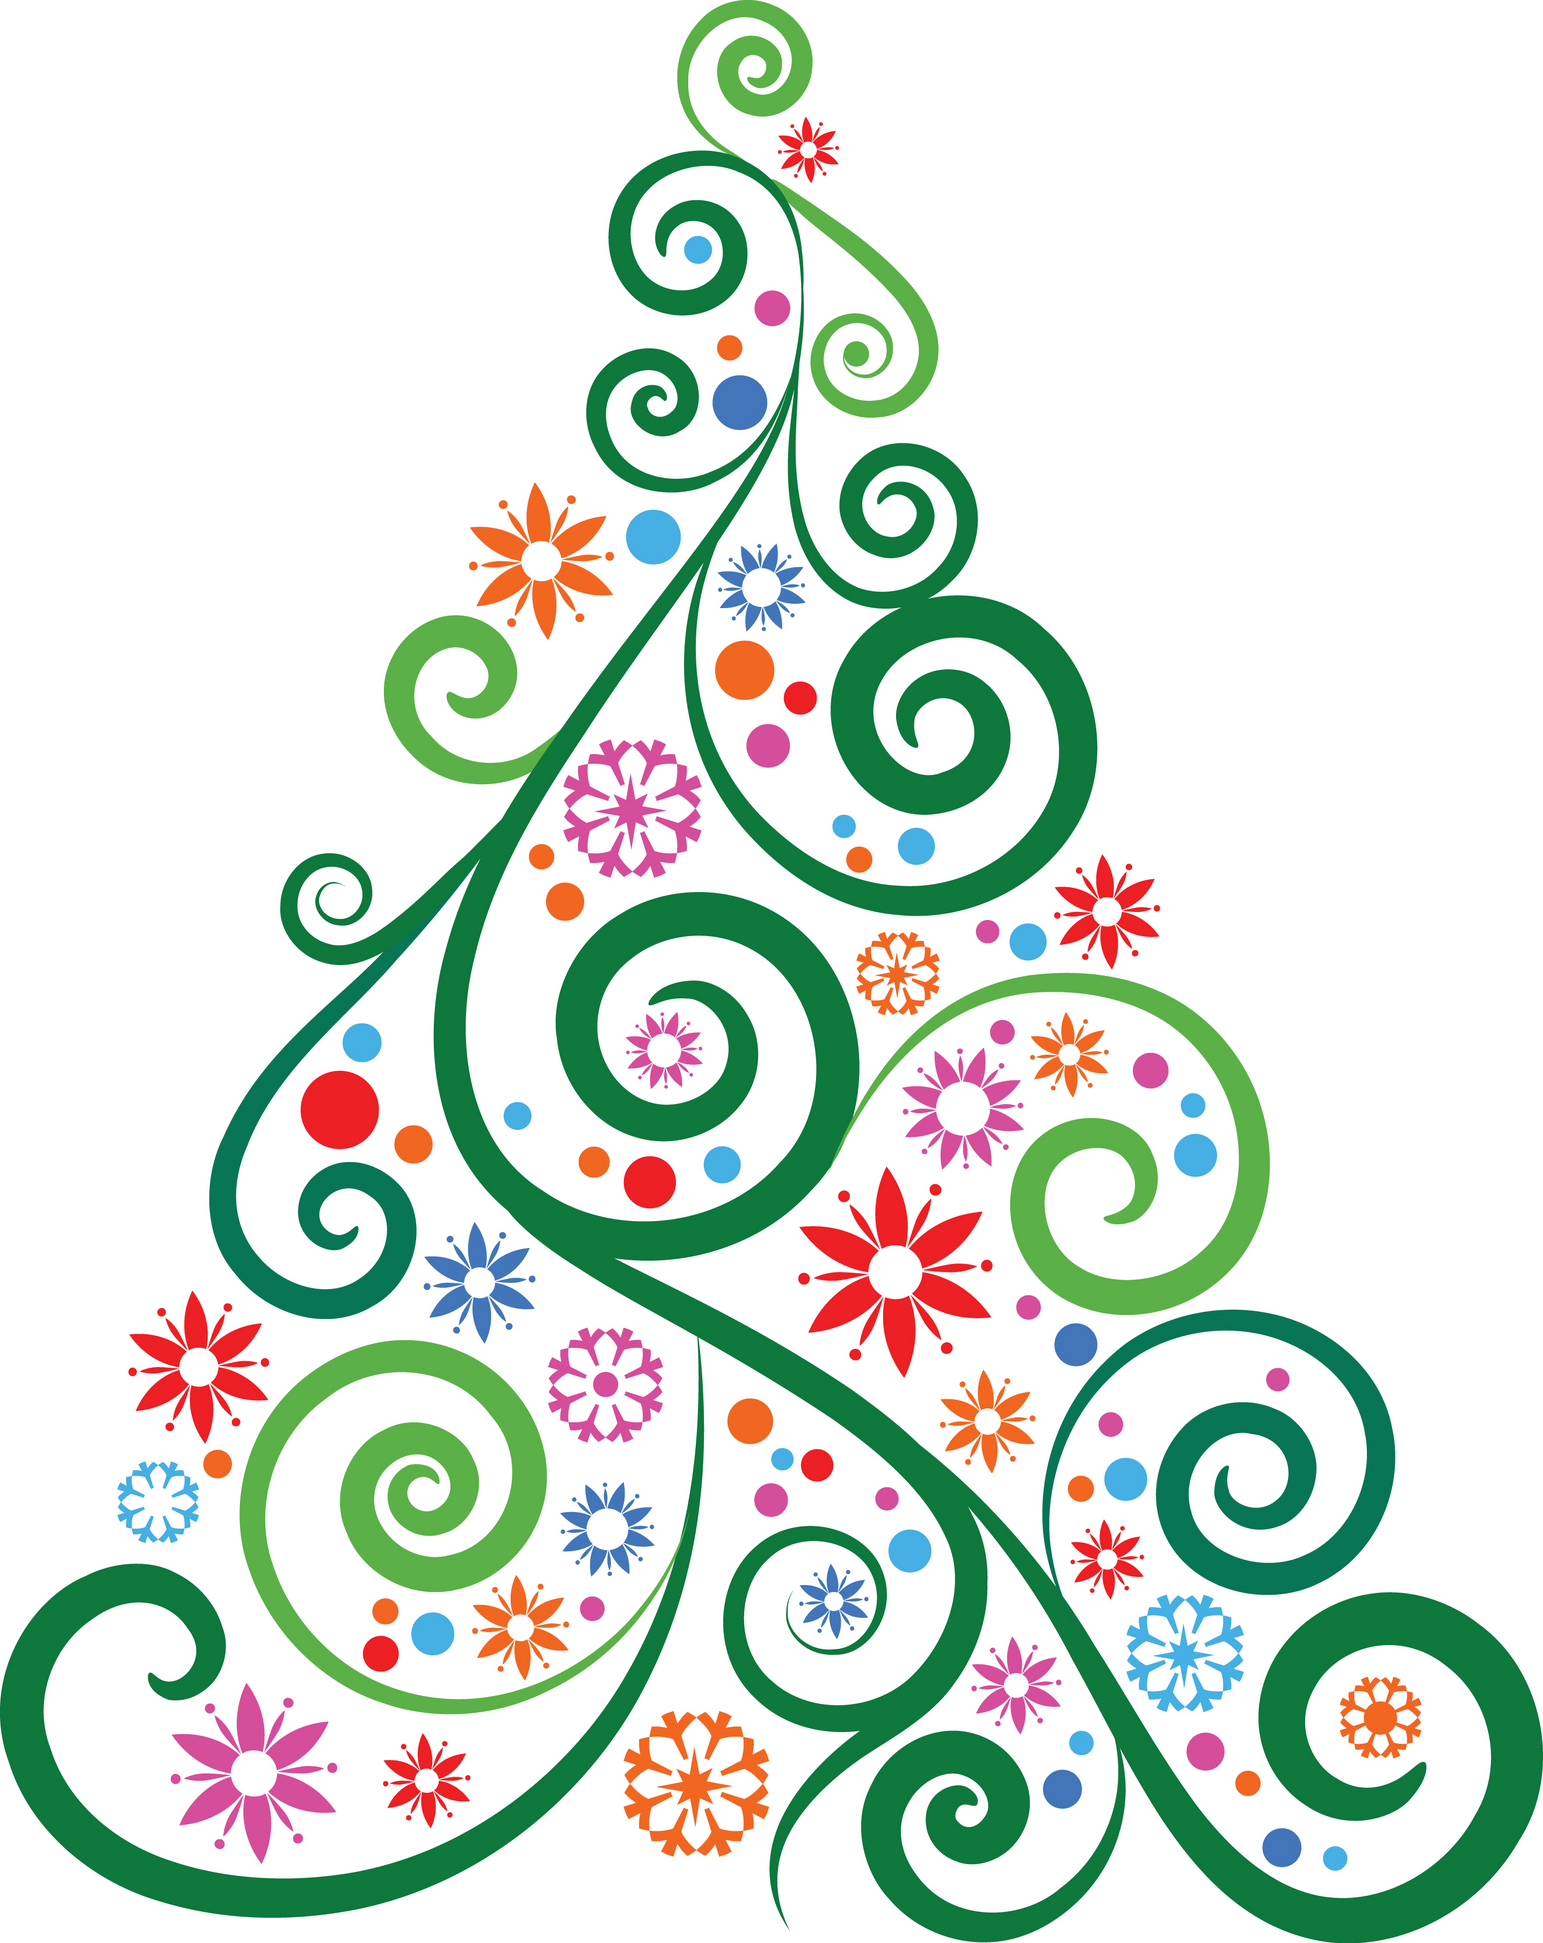 10 Christmas Tree Line Drawing Free Cliparts That You Can Download To